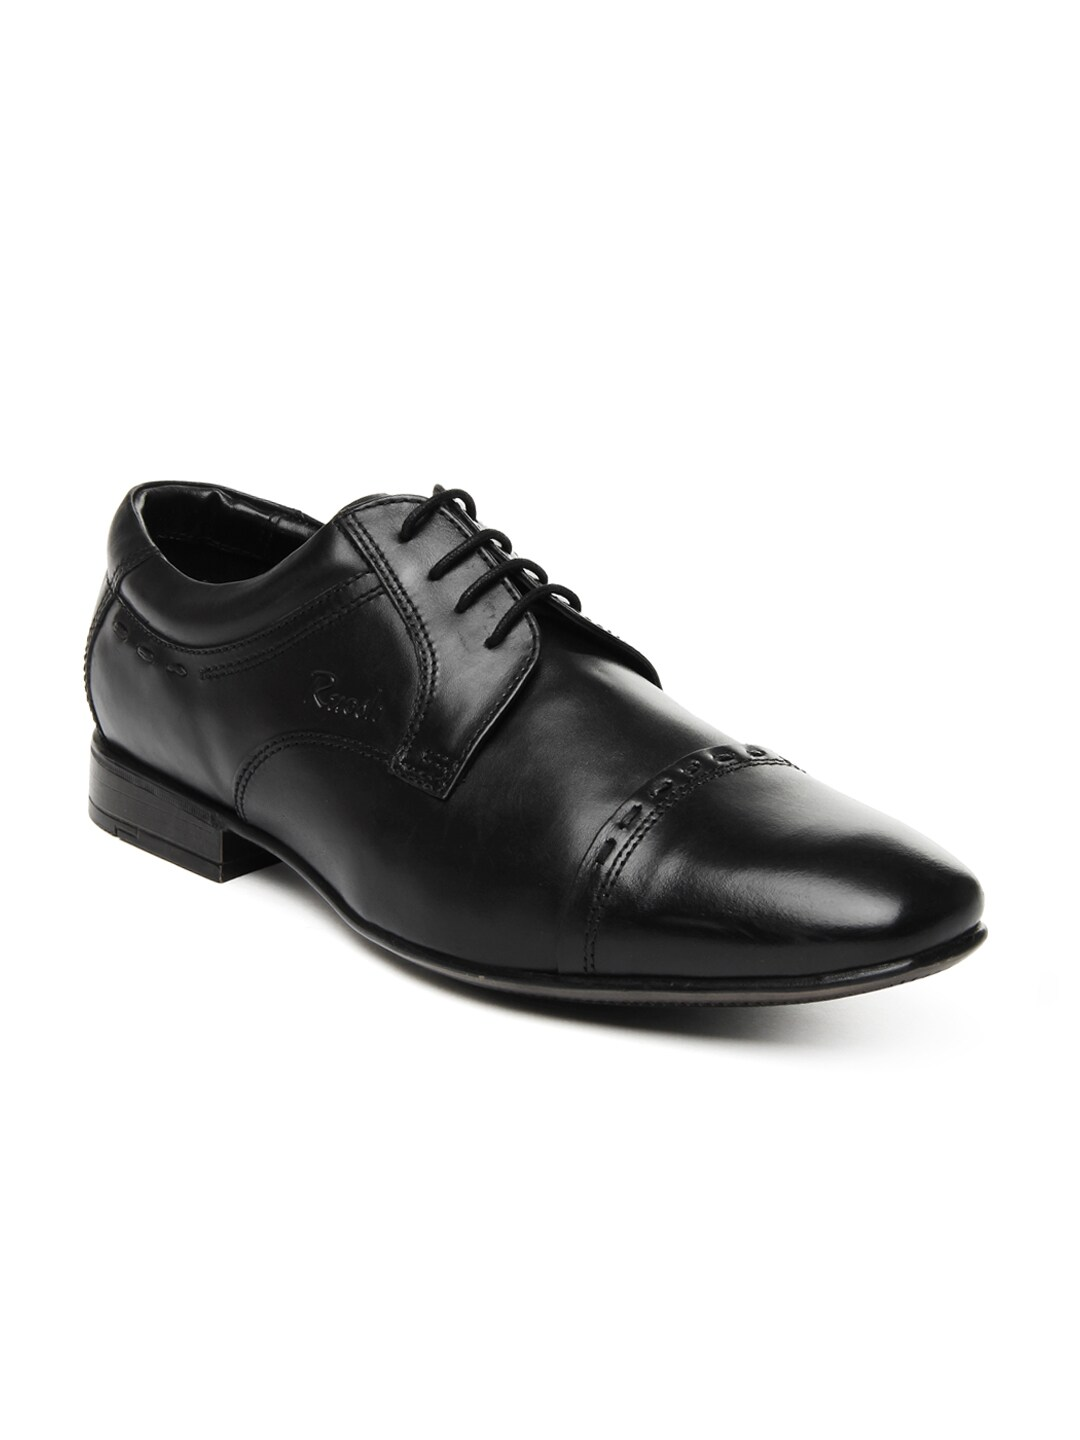 Ruosh Men Black Leather Semi-Formal Shoes